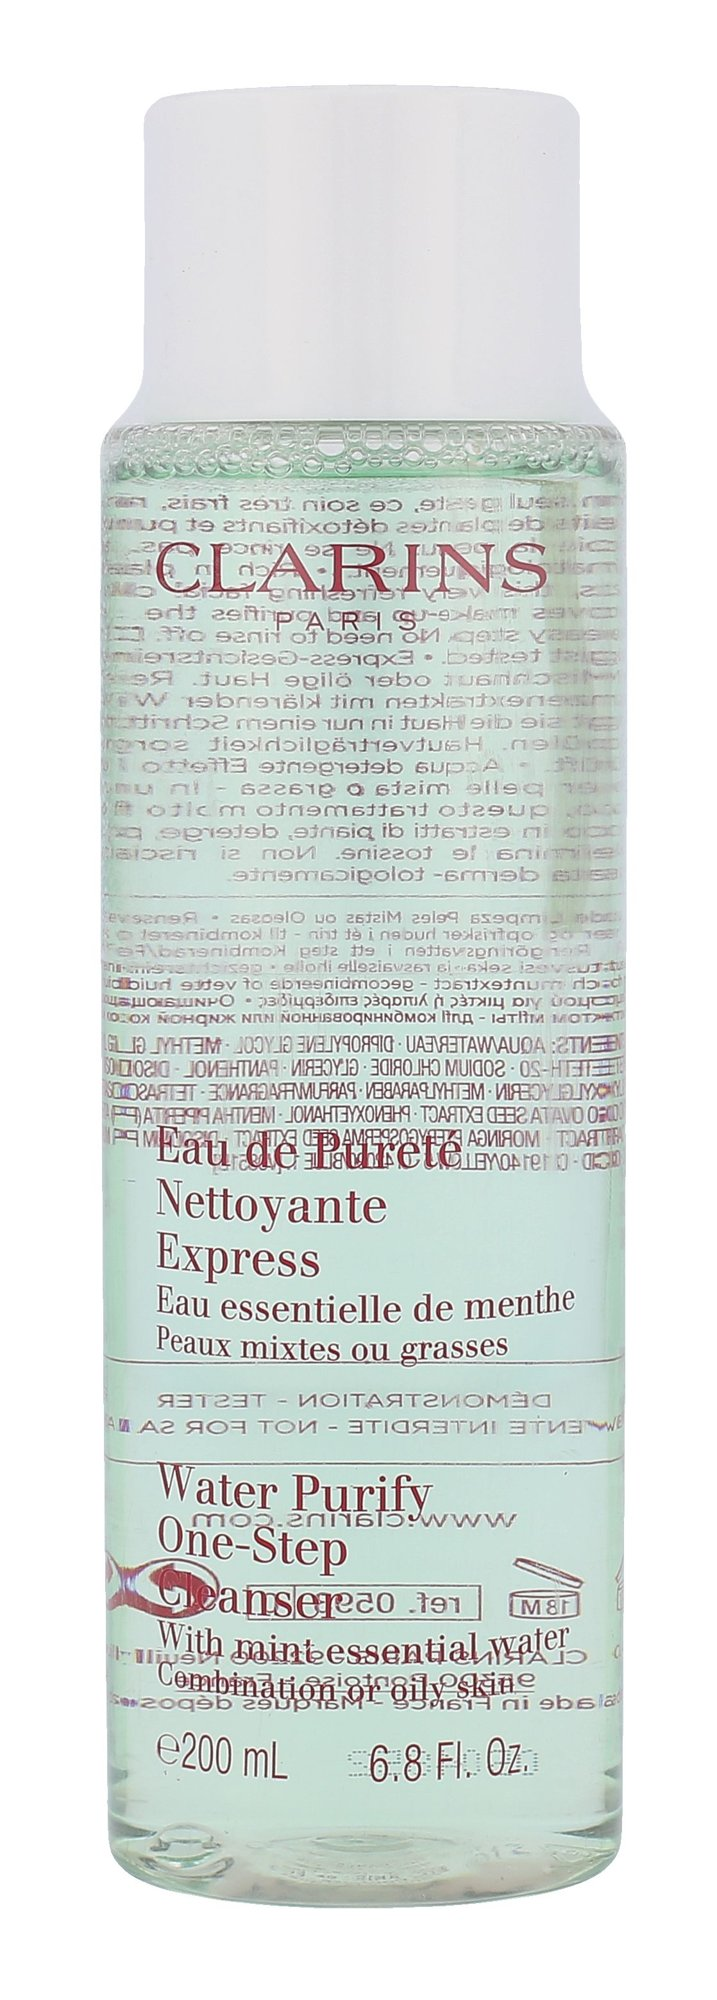 Clarins Water Purify One Step Cleanser Cosmetic 200ml